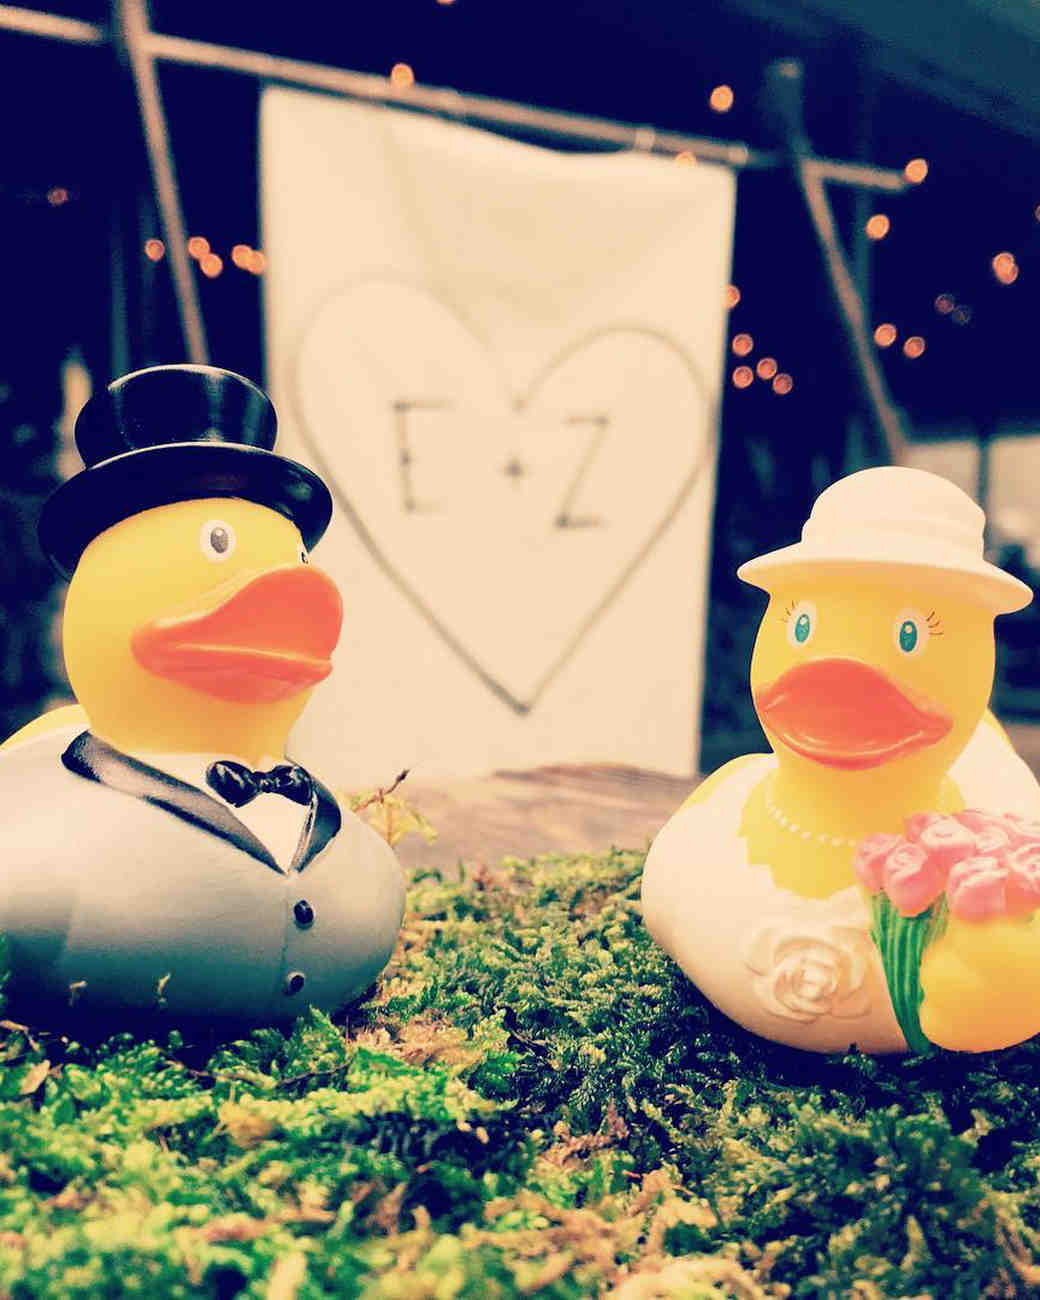 Zozia Mamet and Evan Jonigkeit's Wedding Rubber Ducks